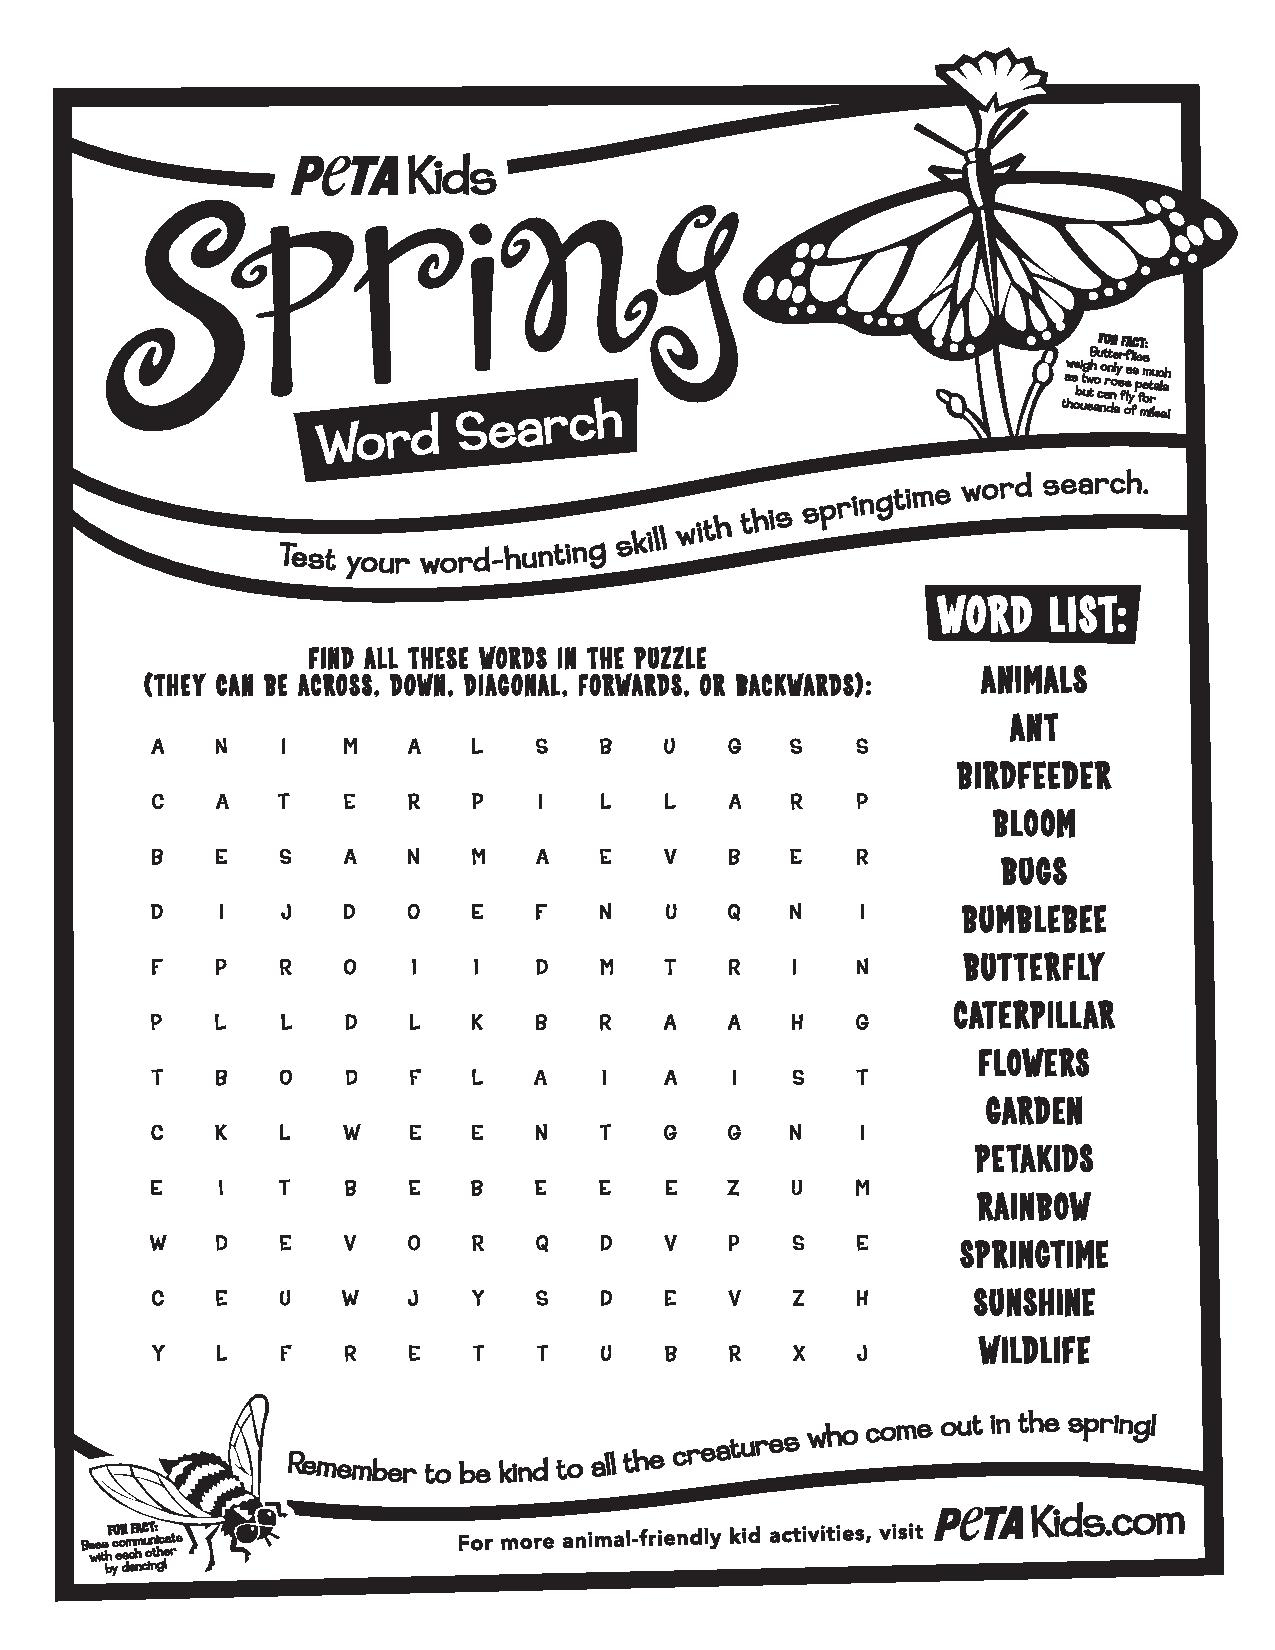 Spring Bugs Word Search | Activities | Peta Kids - Printable Spring Puzzles